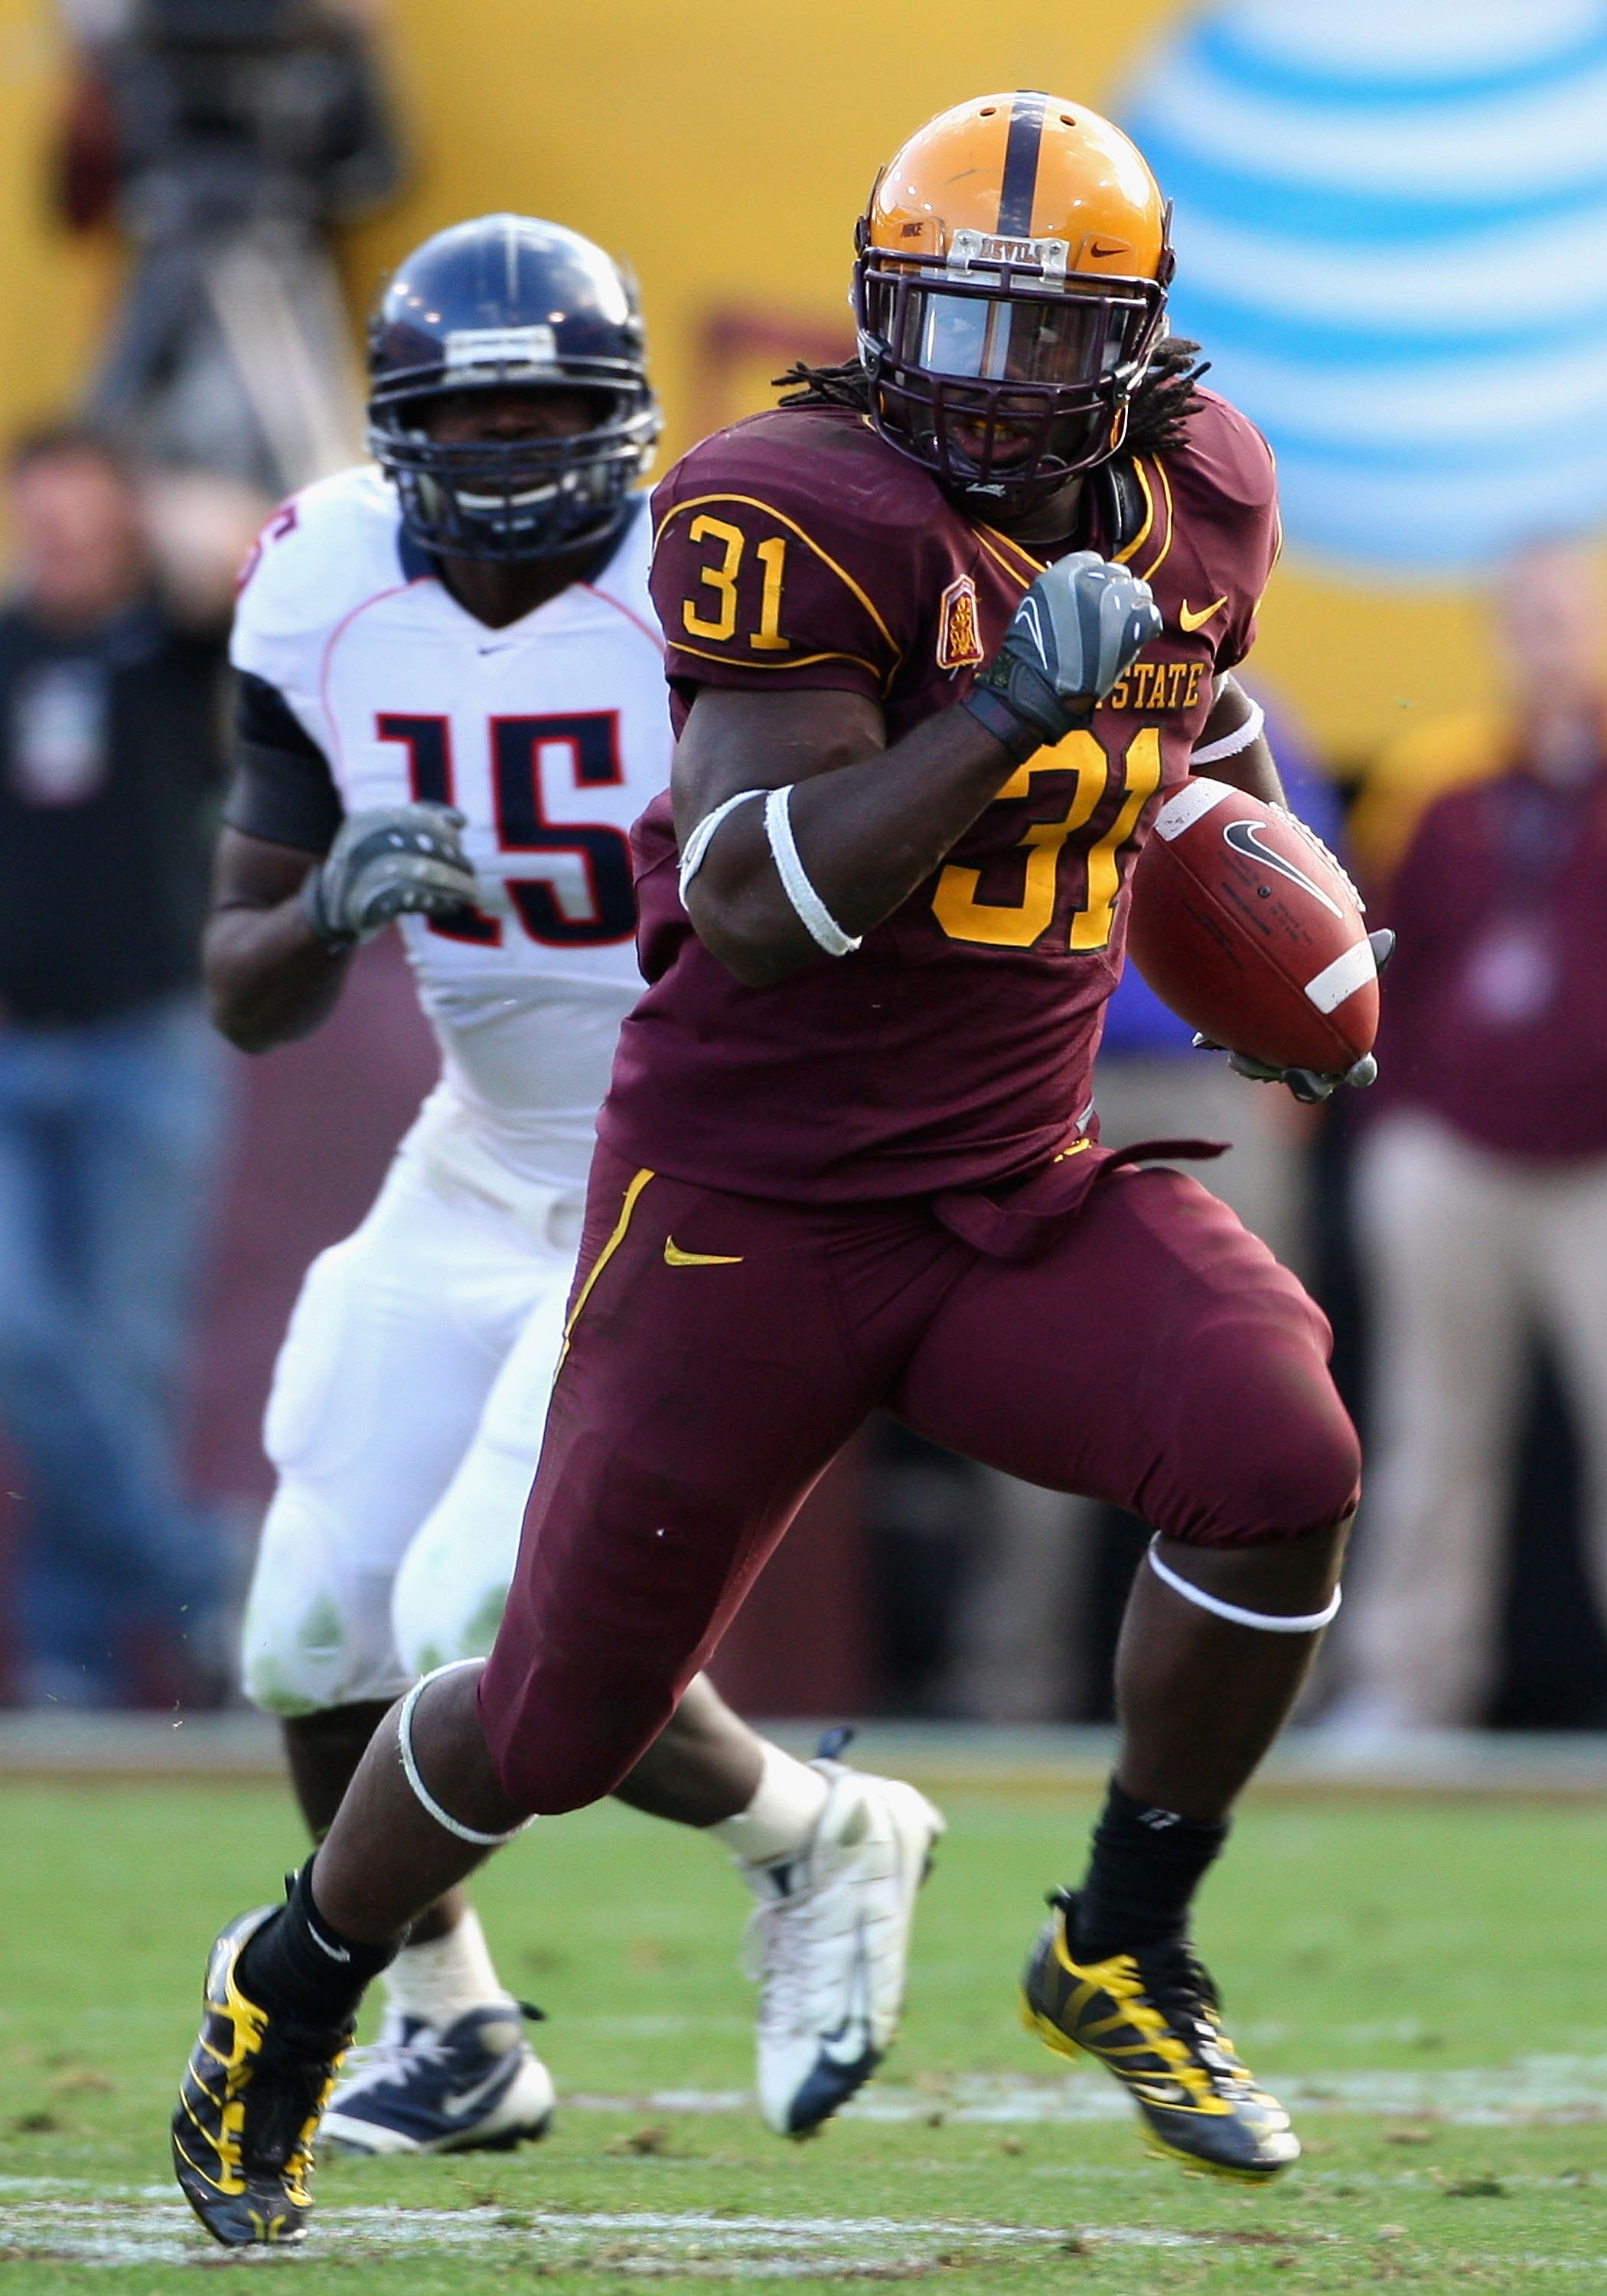 TEMPE, AZ - NOVEMBER 28:  Runningback Dimitri Nance #31 of the Arizona State Sun Devils rushes the football during the college football game against the Arizona Wildcats at Sun Devil Stadium on November 28, 2009 in Tempe, Arizona.  The Wildcats defeated t